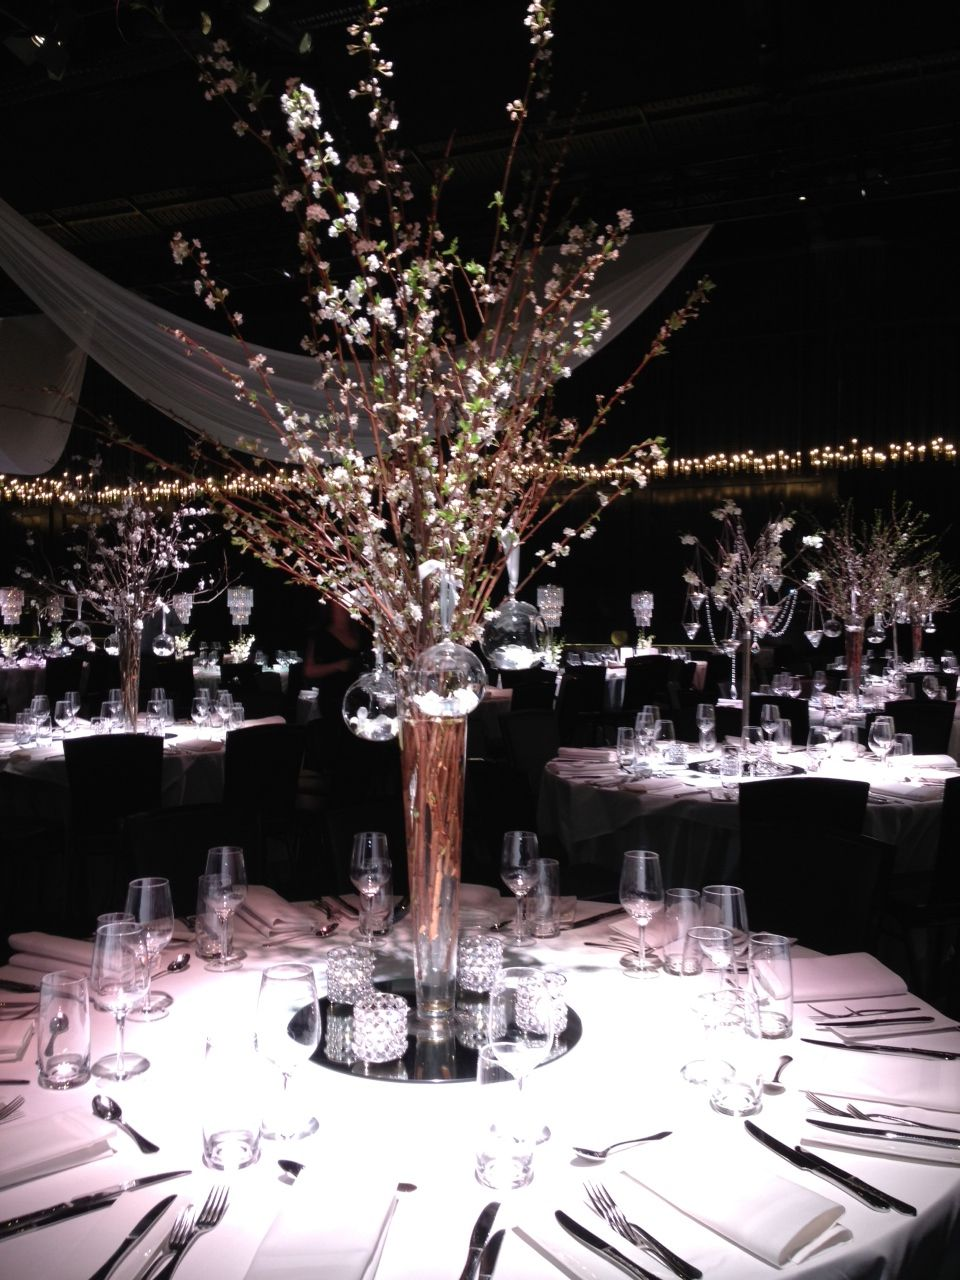 Weddings and events by decor it events decorit melbourne weddings and events by decor it events decorit melbourne junglespirit Gallery